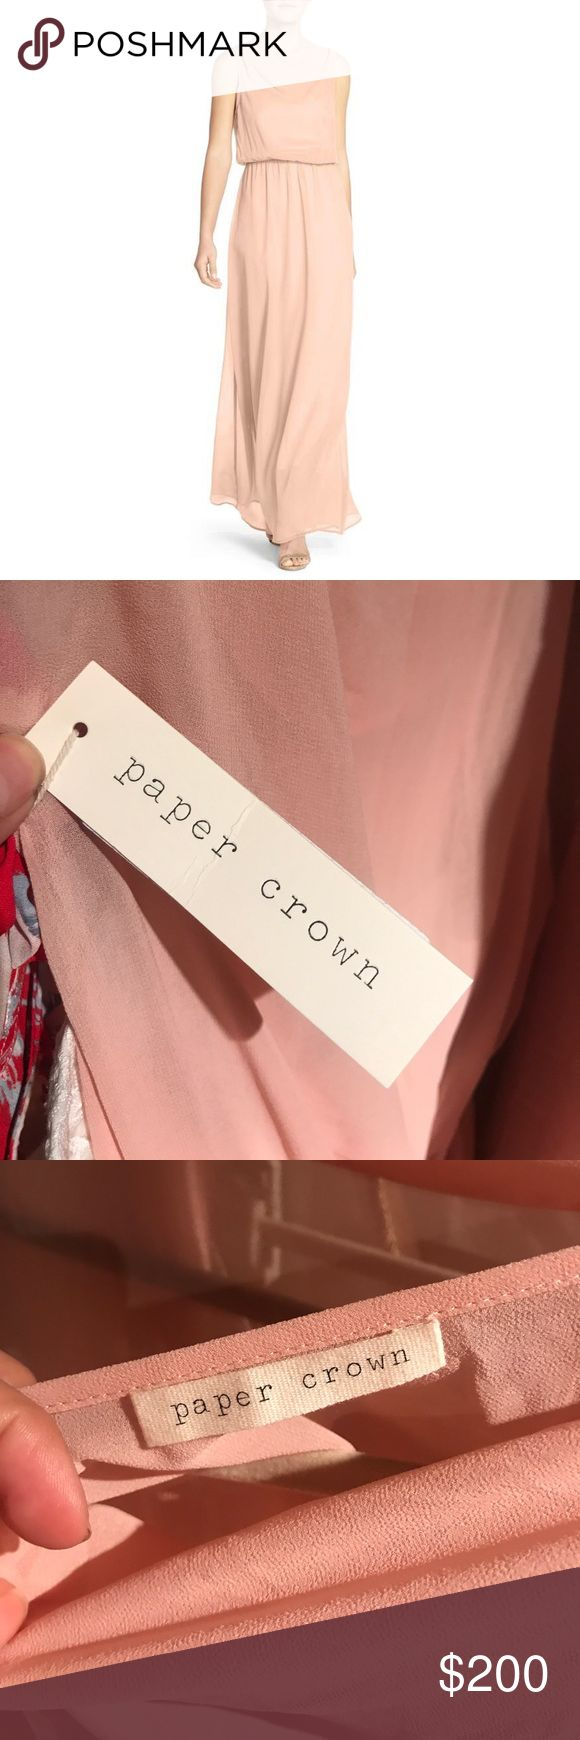 """Paper Crown🌸SALE🌸Bridesmaid Springfield Dress A sleeveless gown befitting a Grecian goddess is fashioned from ethereal chiffon in an elegant yet effortlessly fitting style with a collarbone-grazing cowl neckline atop the blousy bodice. Color: pink.   59"""" length Slips on over head. Cowl neck. Reasonable offers will be considered. 🌸 On sale now at Nordstrom for $177! Paper Crown Dresses Maxi"""